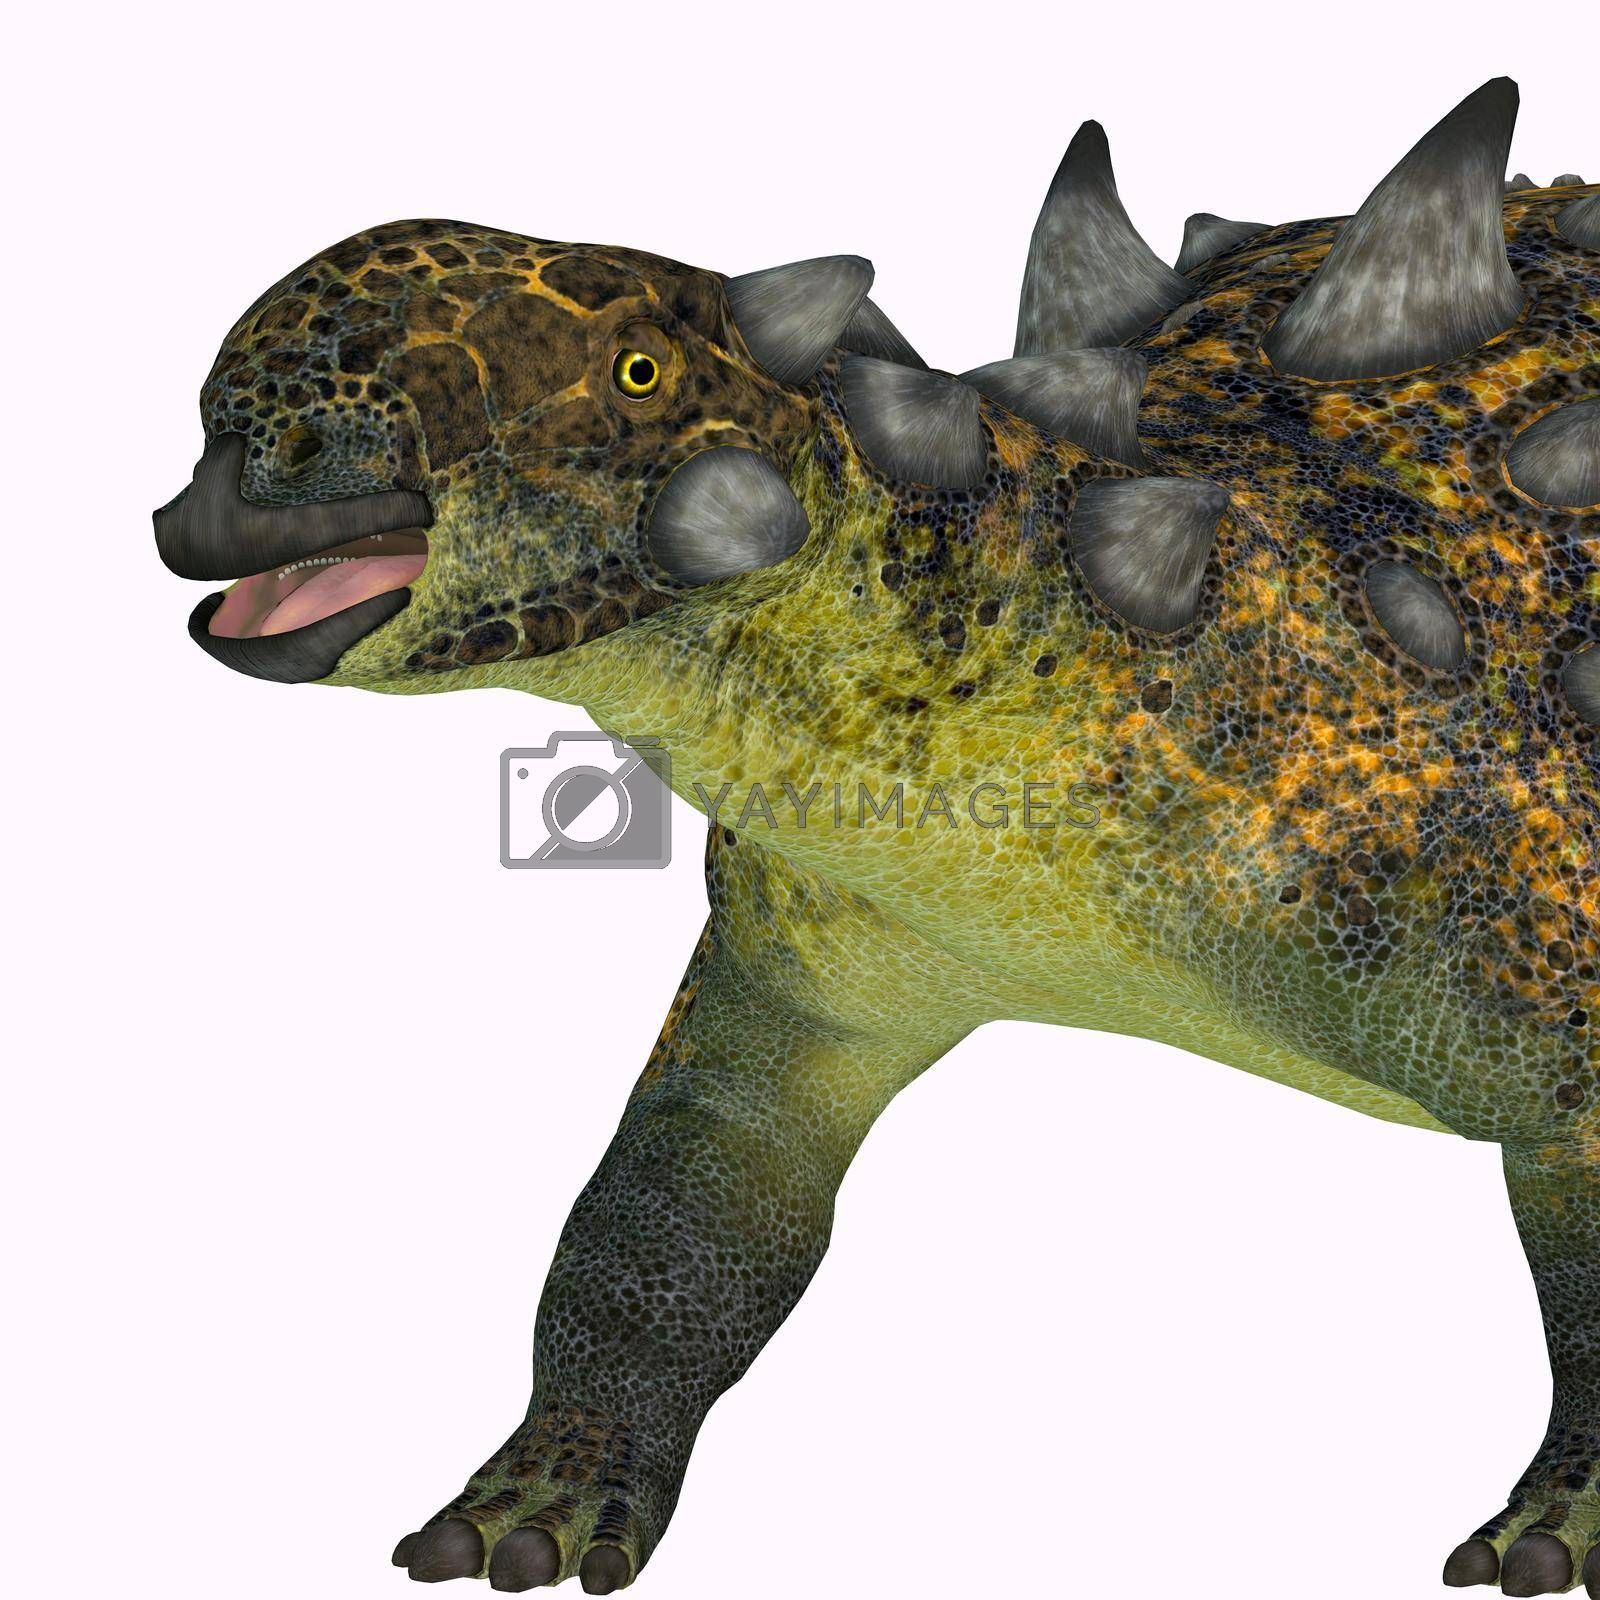 The ankylosaurid Euoplocephalus was a herbivorous armored dinosaur that lived in Canada during the Cretaceous Period.